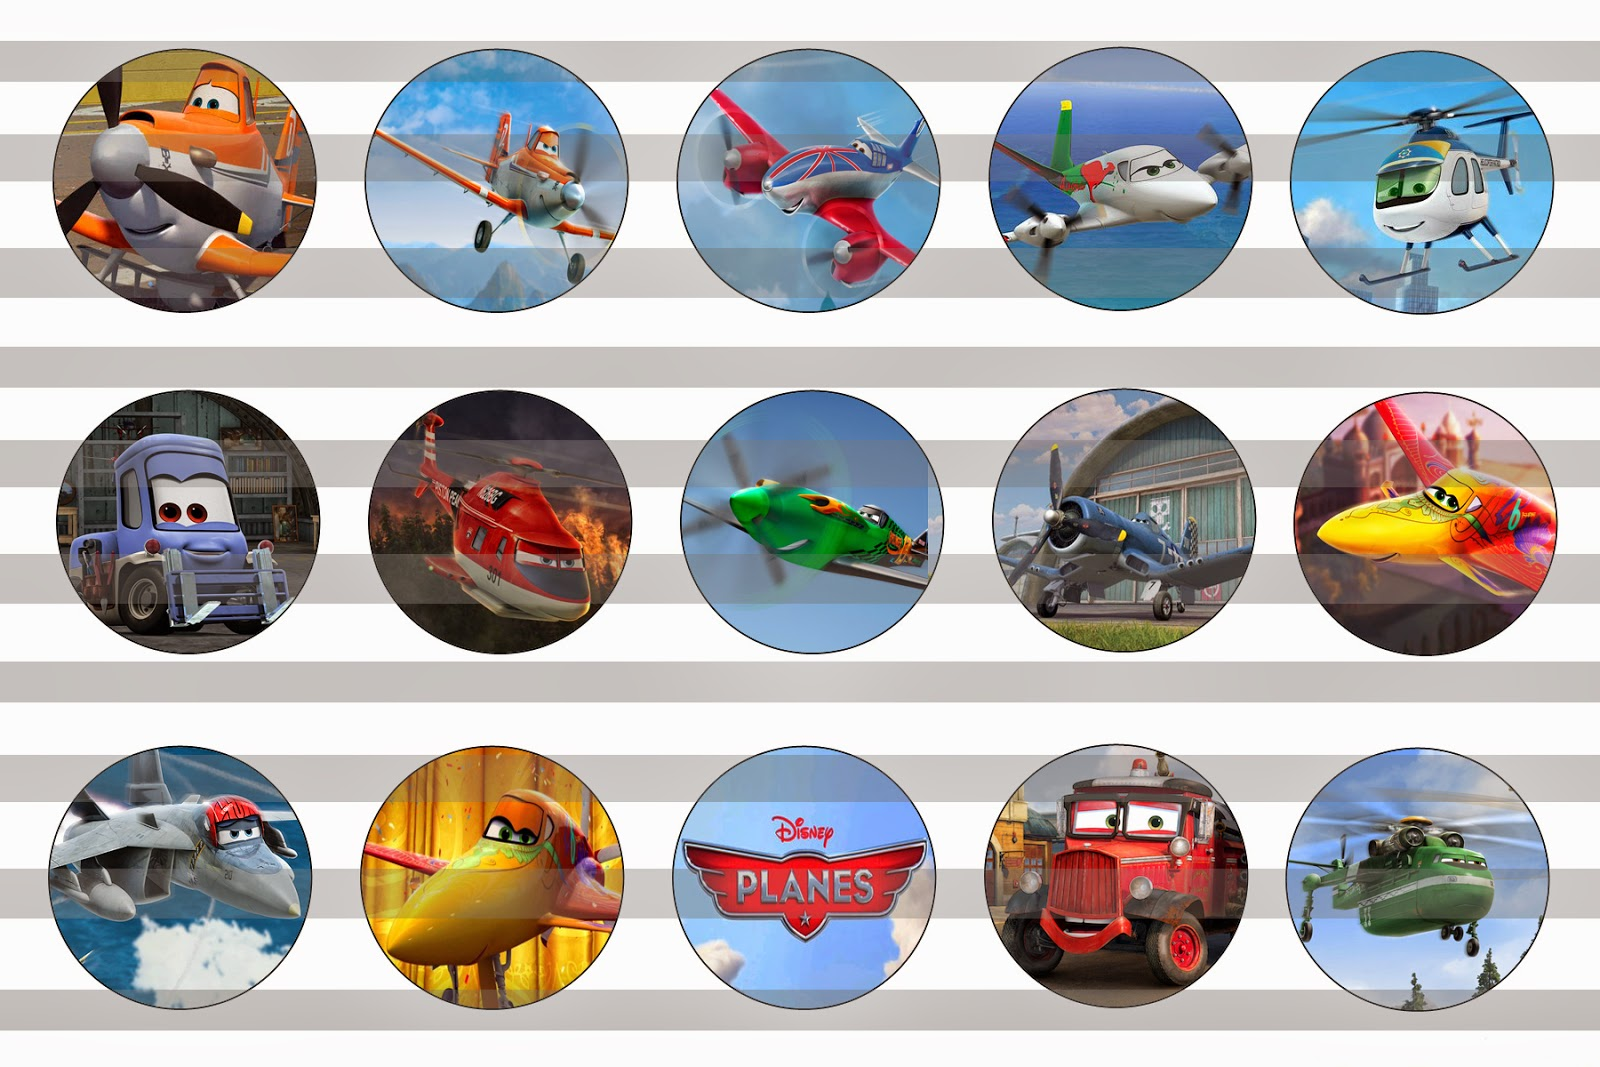 Unique bottle cap designs disney planes bottle cap image for Cool bottle cap designs